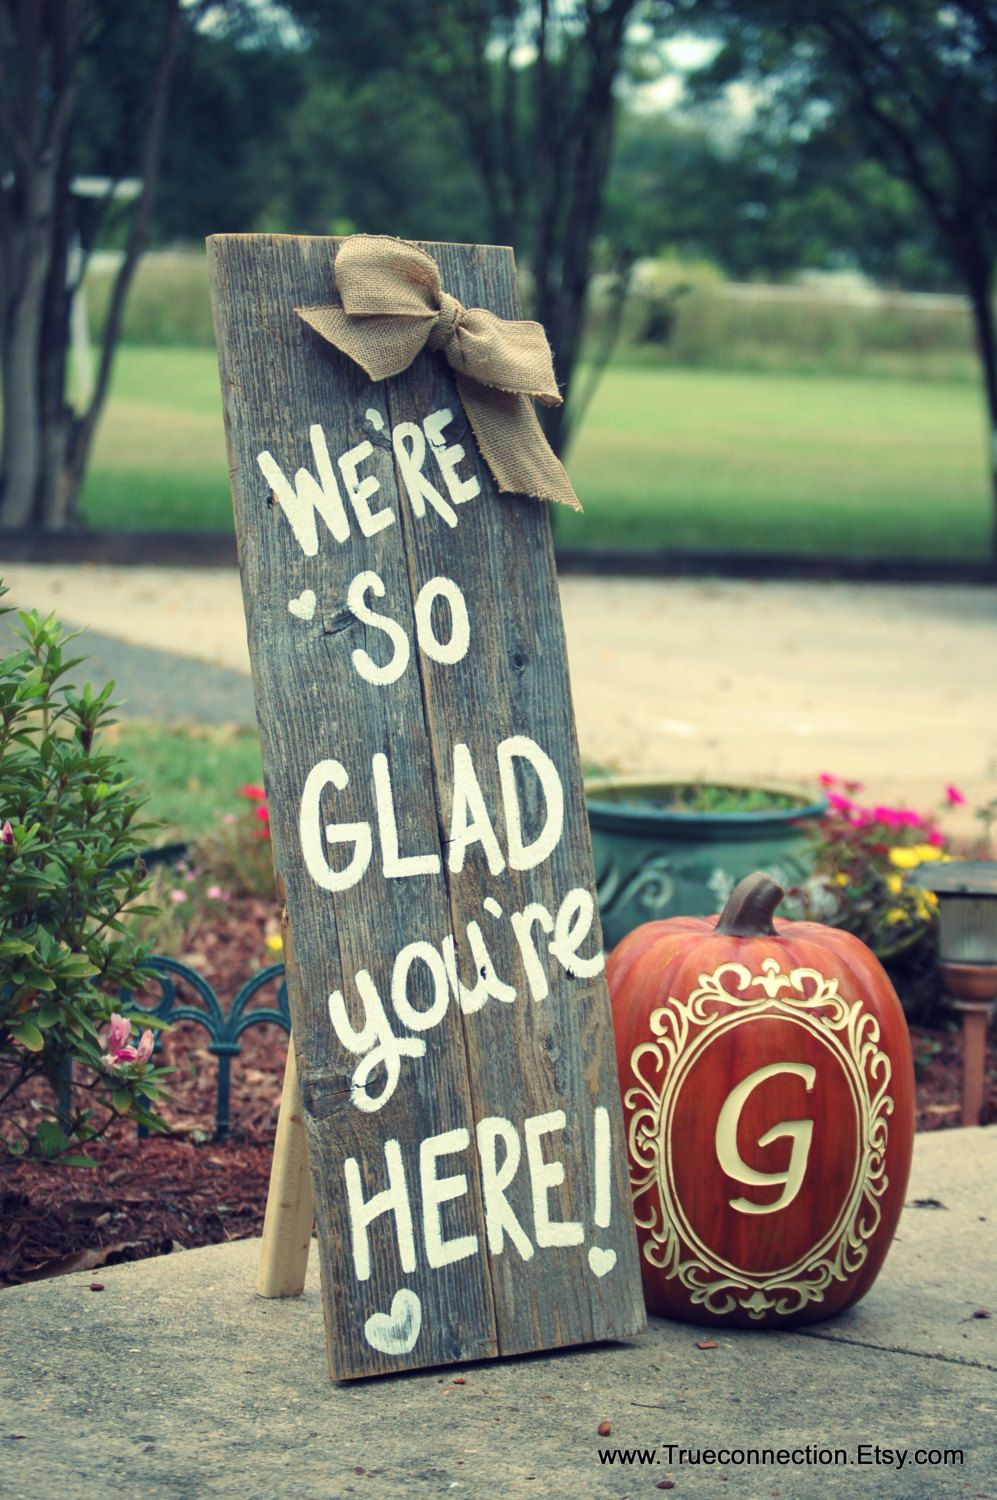 The home front porches porch signs wooden animal signs wooden signs - Standing Fall Porch Sign Welcome Sign Home Were So Glad Your Here Yard Sign Name Farm Wooden